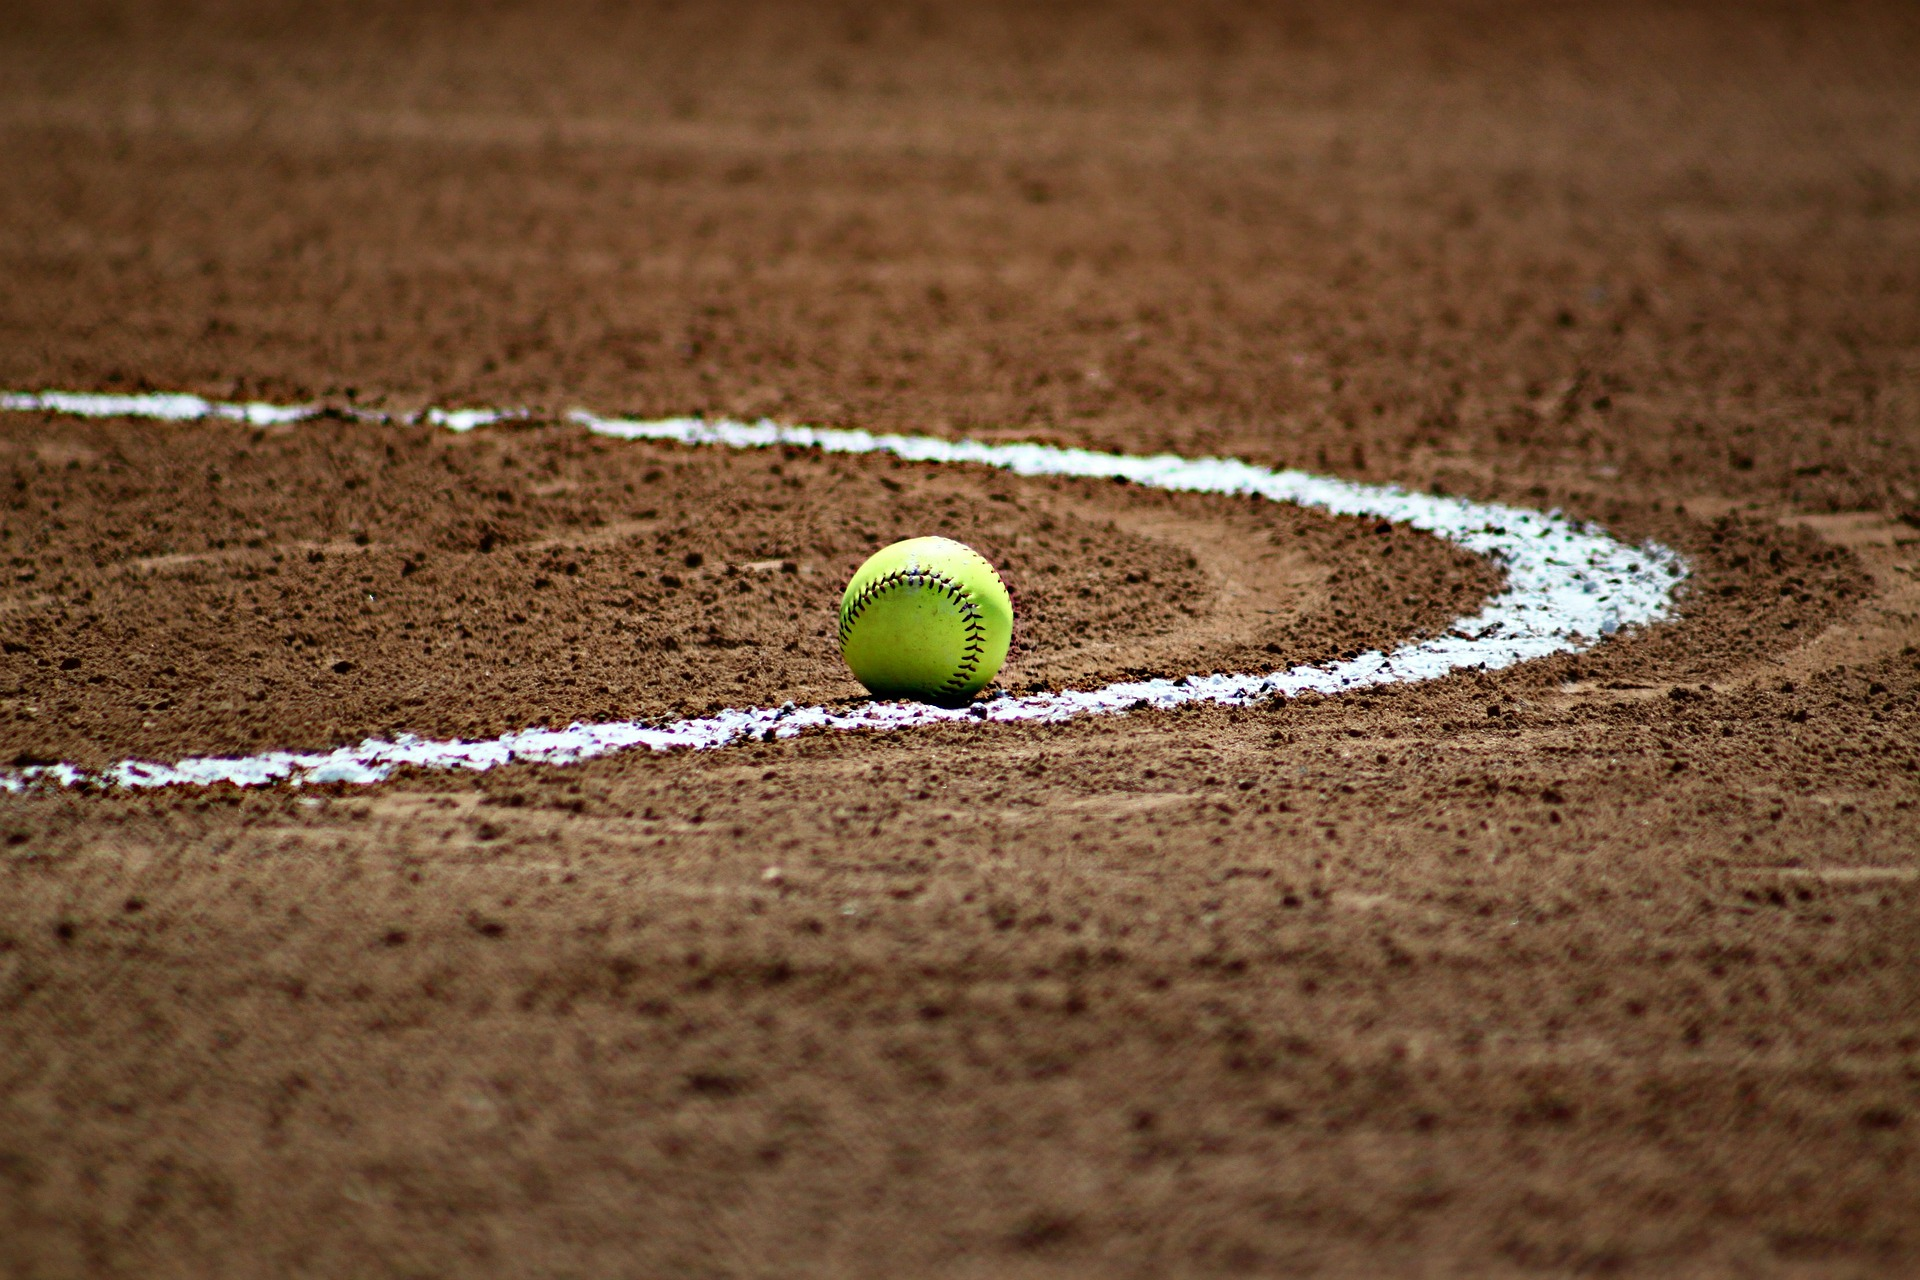 In an article about sports, a photo of a softball on a dirt field